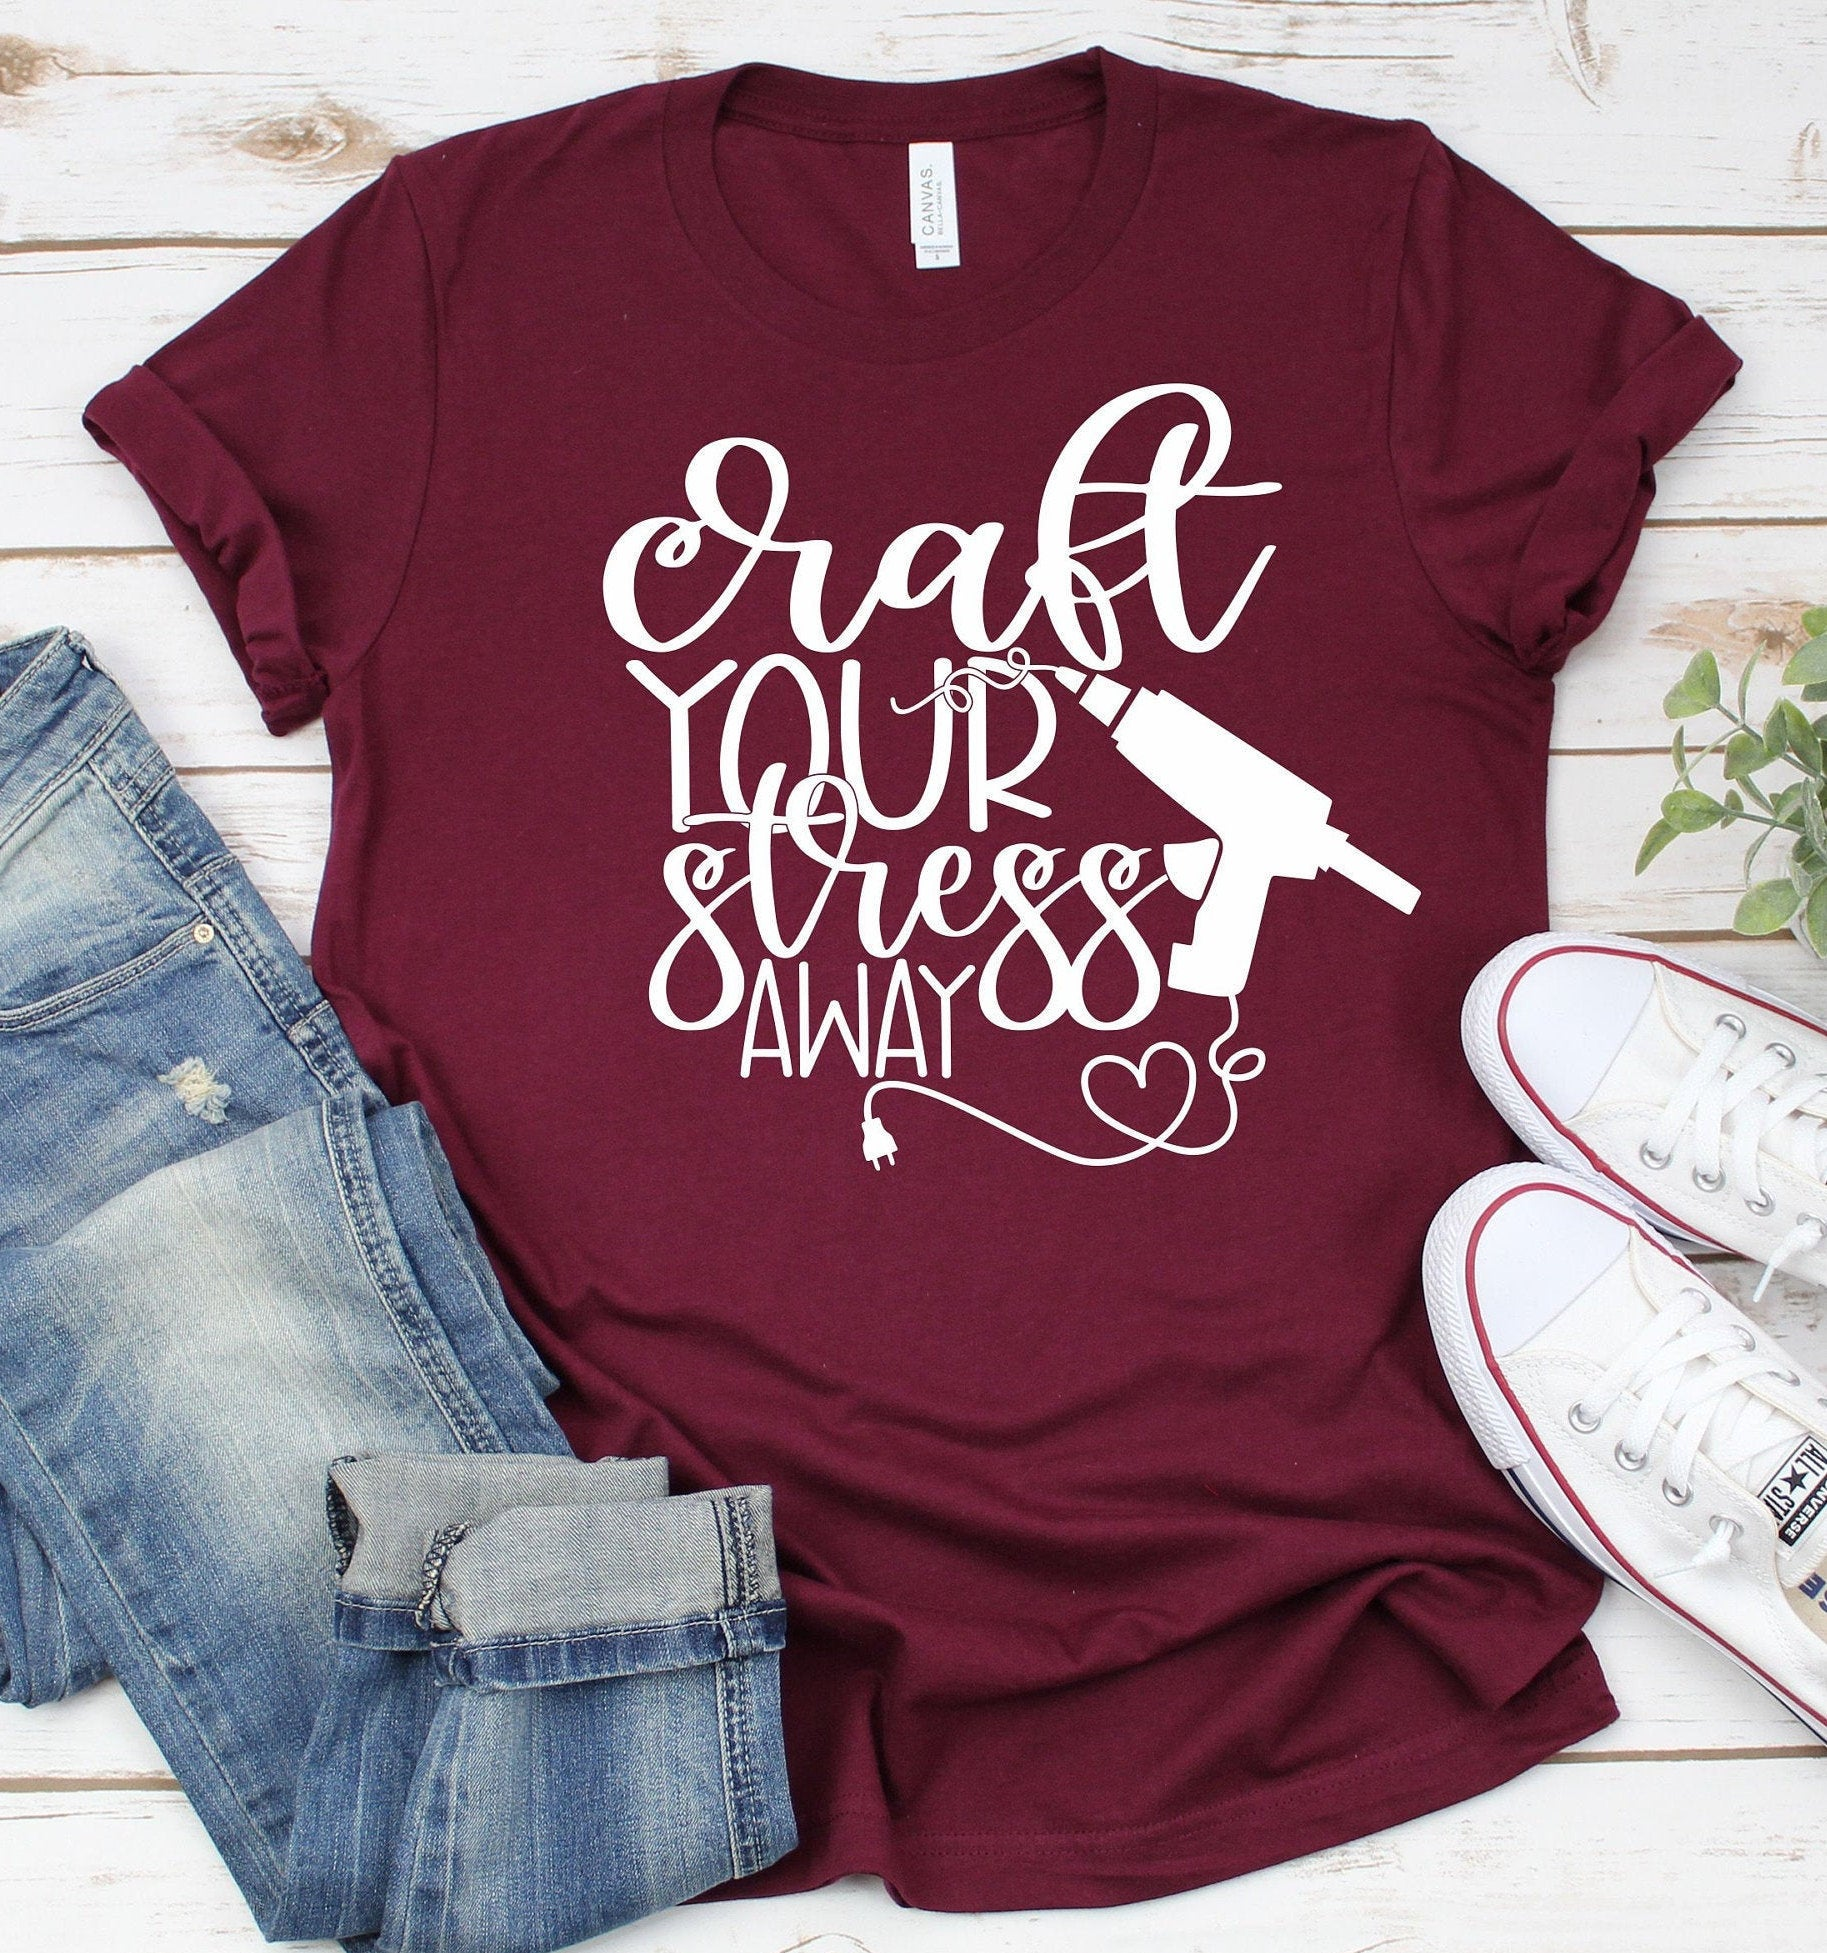 Crafting-your-stress-away-svg-stress-svg-crafting-svg-crafty-saying-craft-svg-craft-svg-designs-craft-cut-file-craft-svg-for-cricut-60512ed4